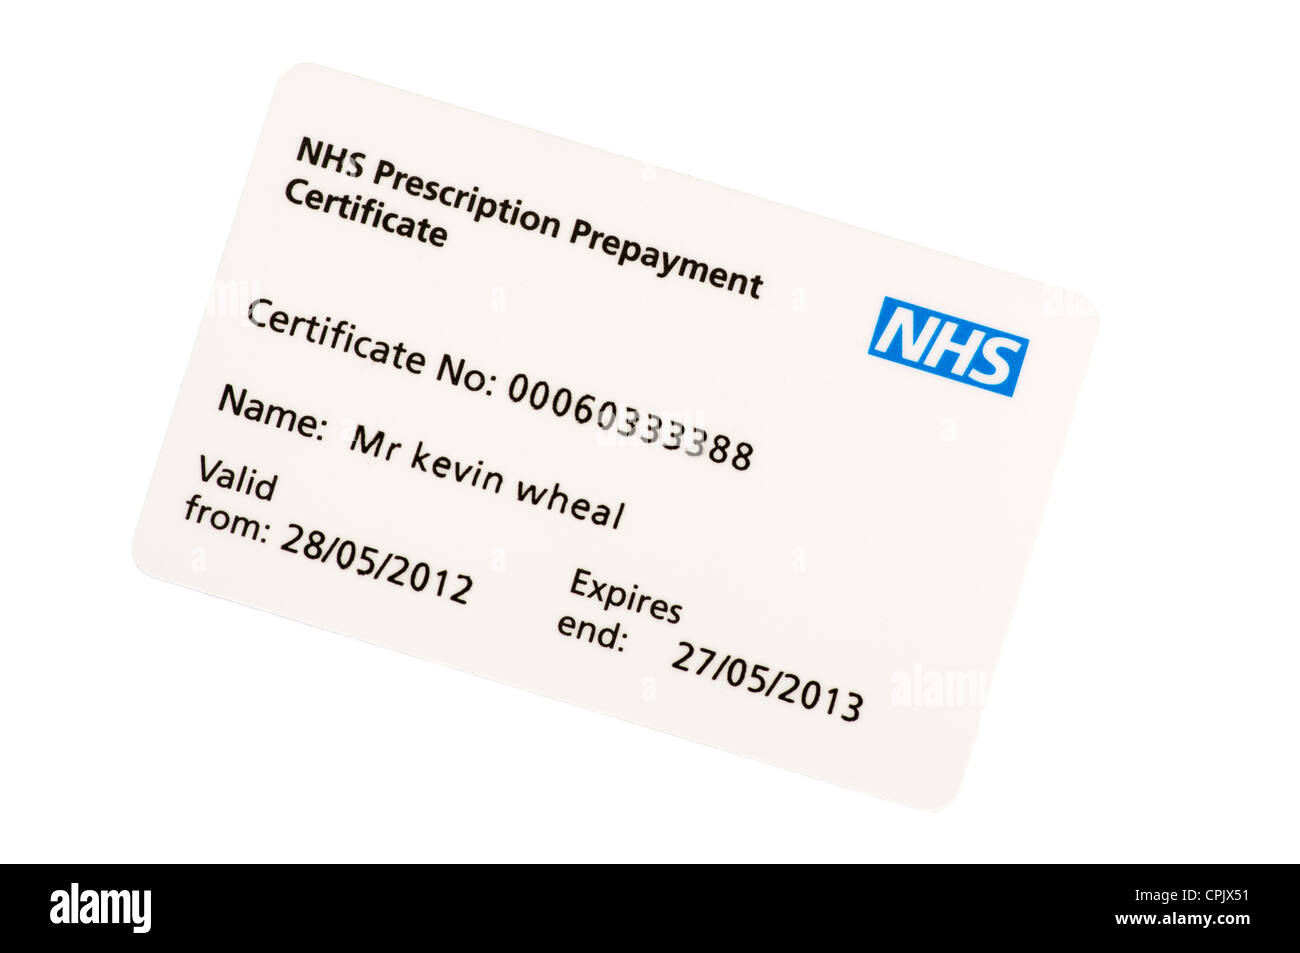 Nhs prescription payment card